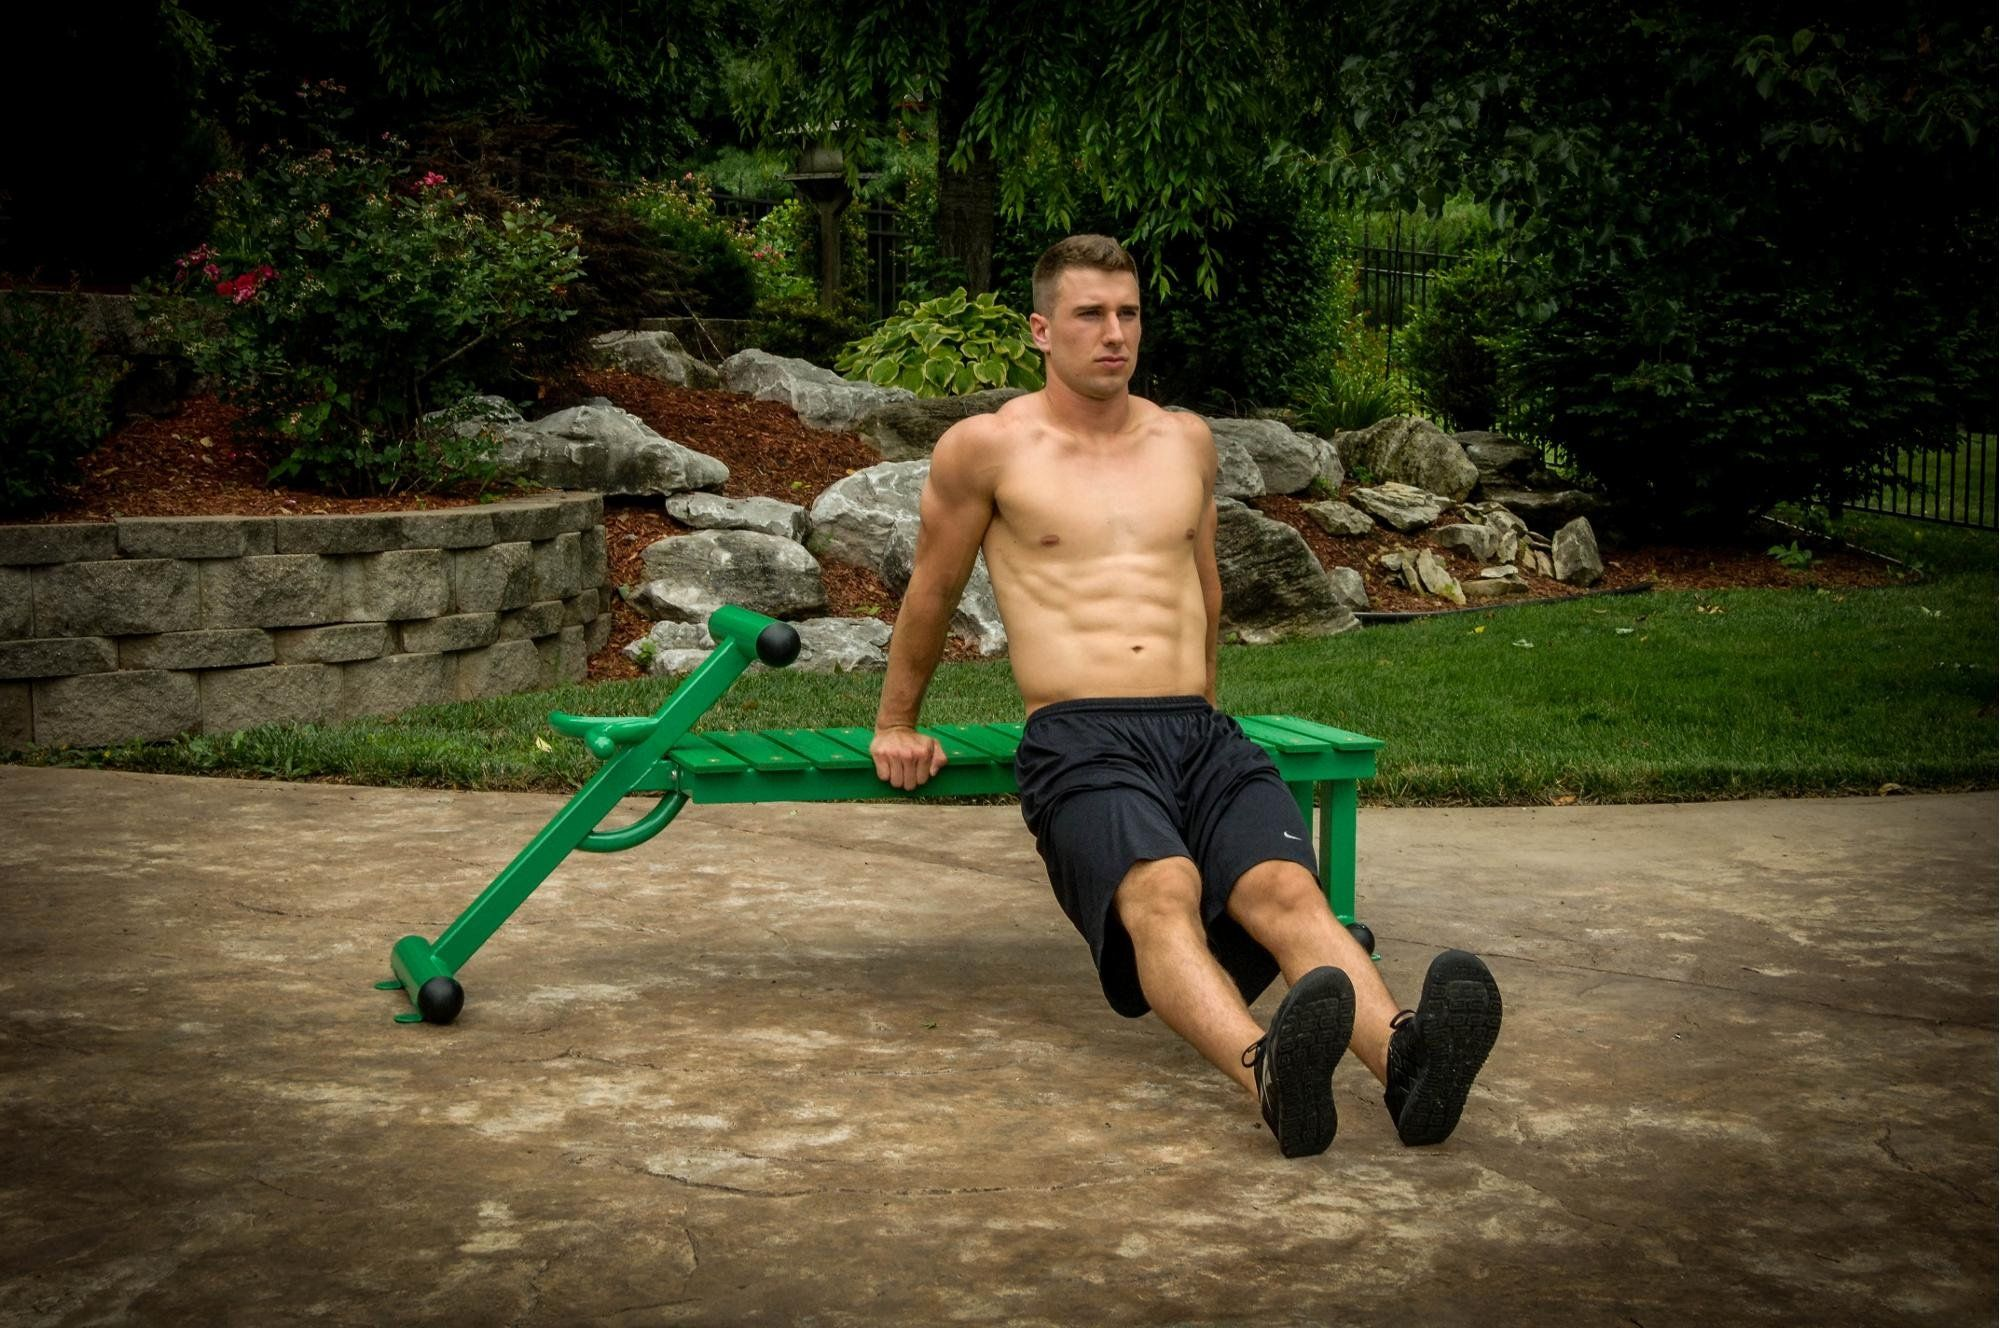 Outdoor Fitness Workout Bench In 2021 Outdoor Workouts Outdoor Fitness Equipment Workouts Outside